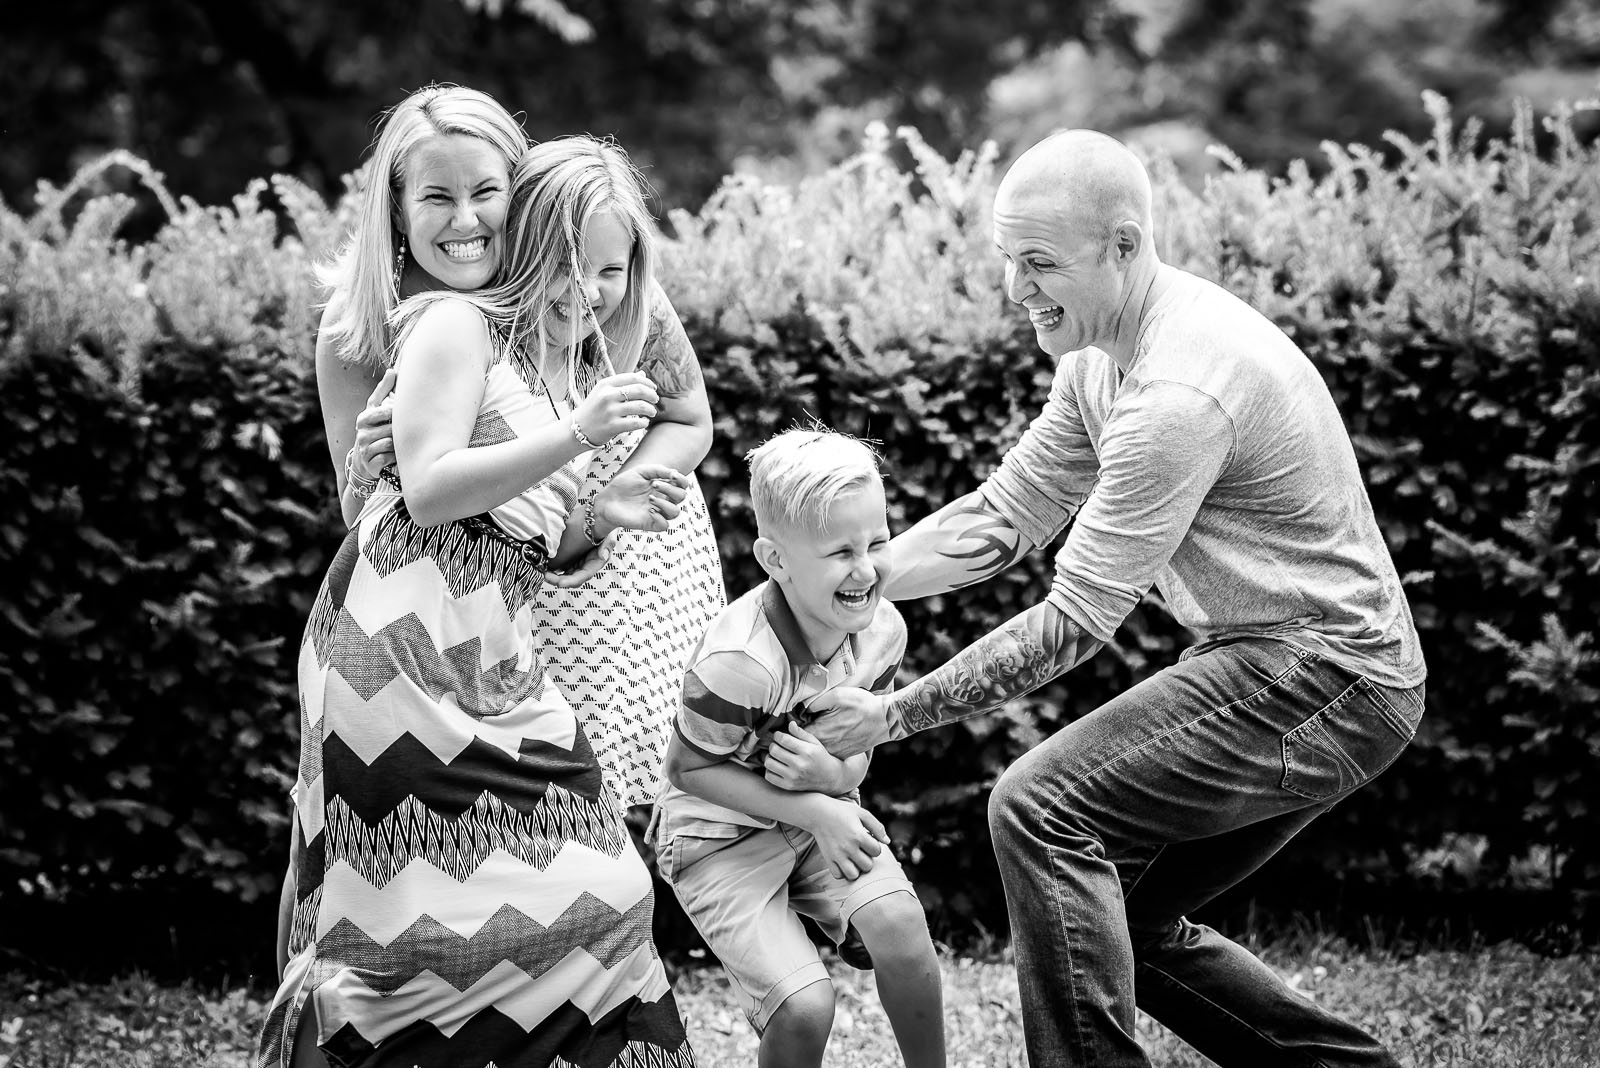 eric_and_christy_photographers_blog_family_kerriaaron-15